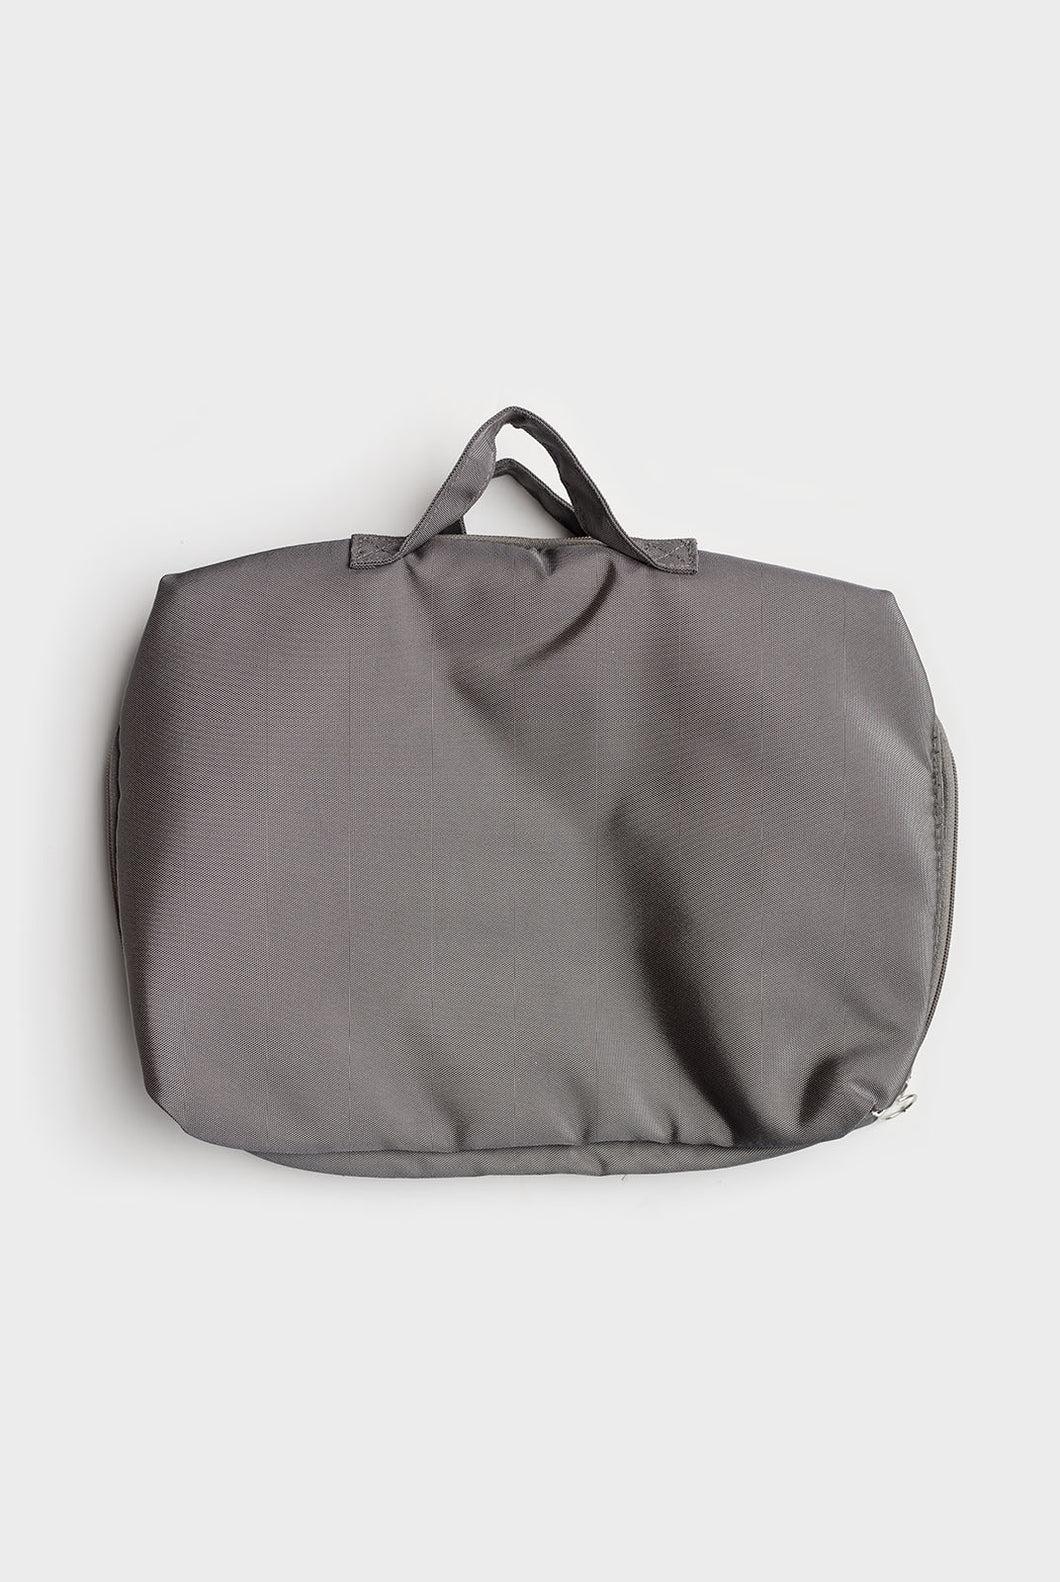 Hightide - Round Carrying Bag - Charcoal Grey